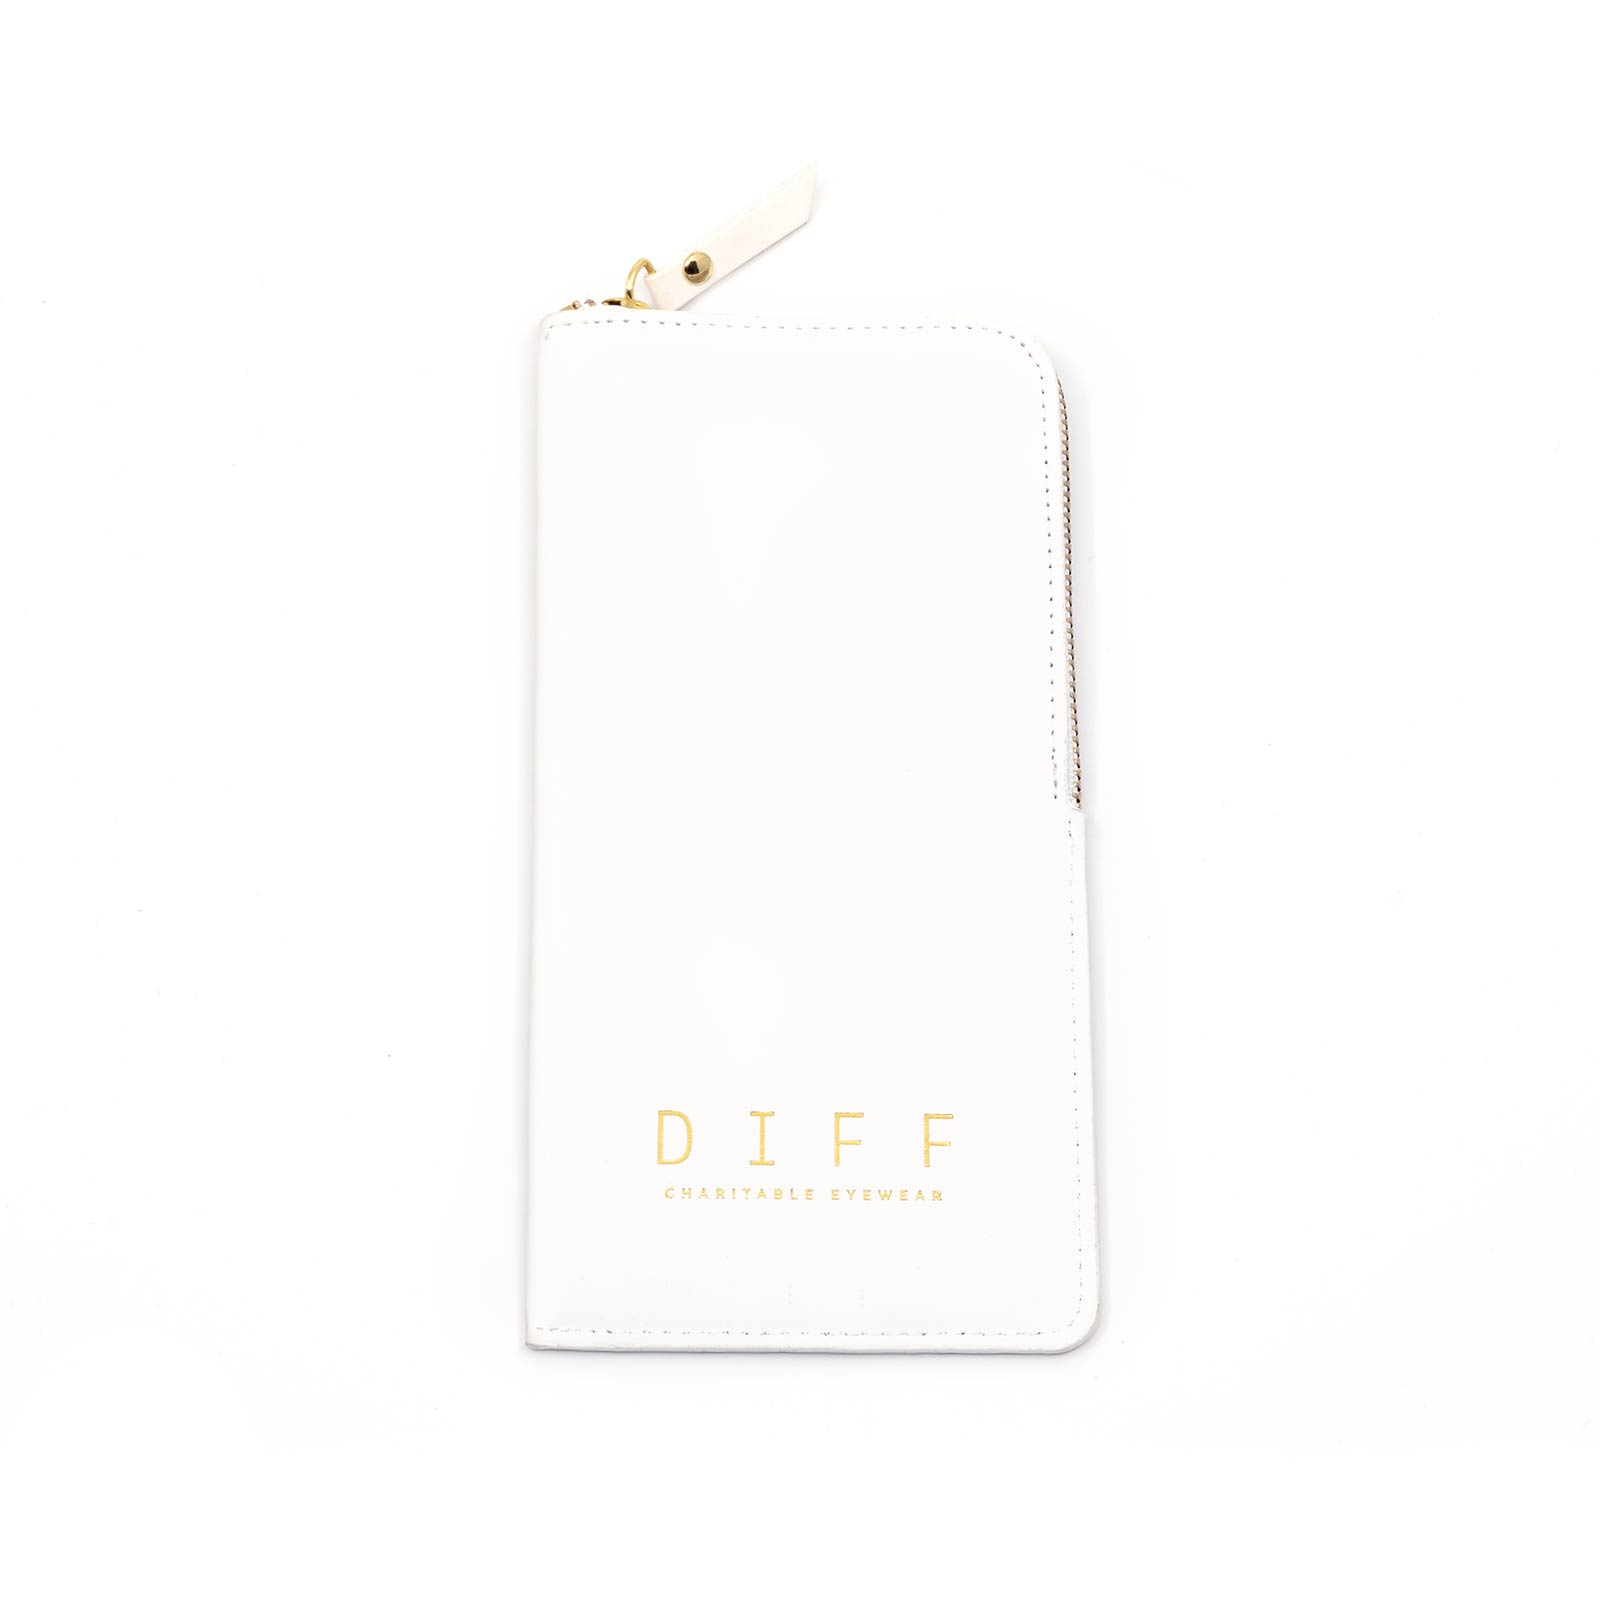 SOFT SIDE ZIPPER CASE - White